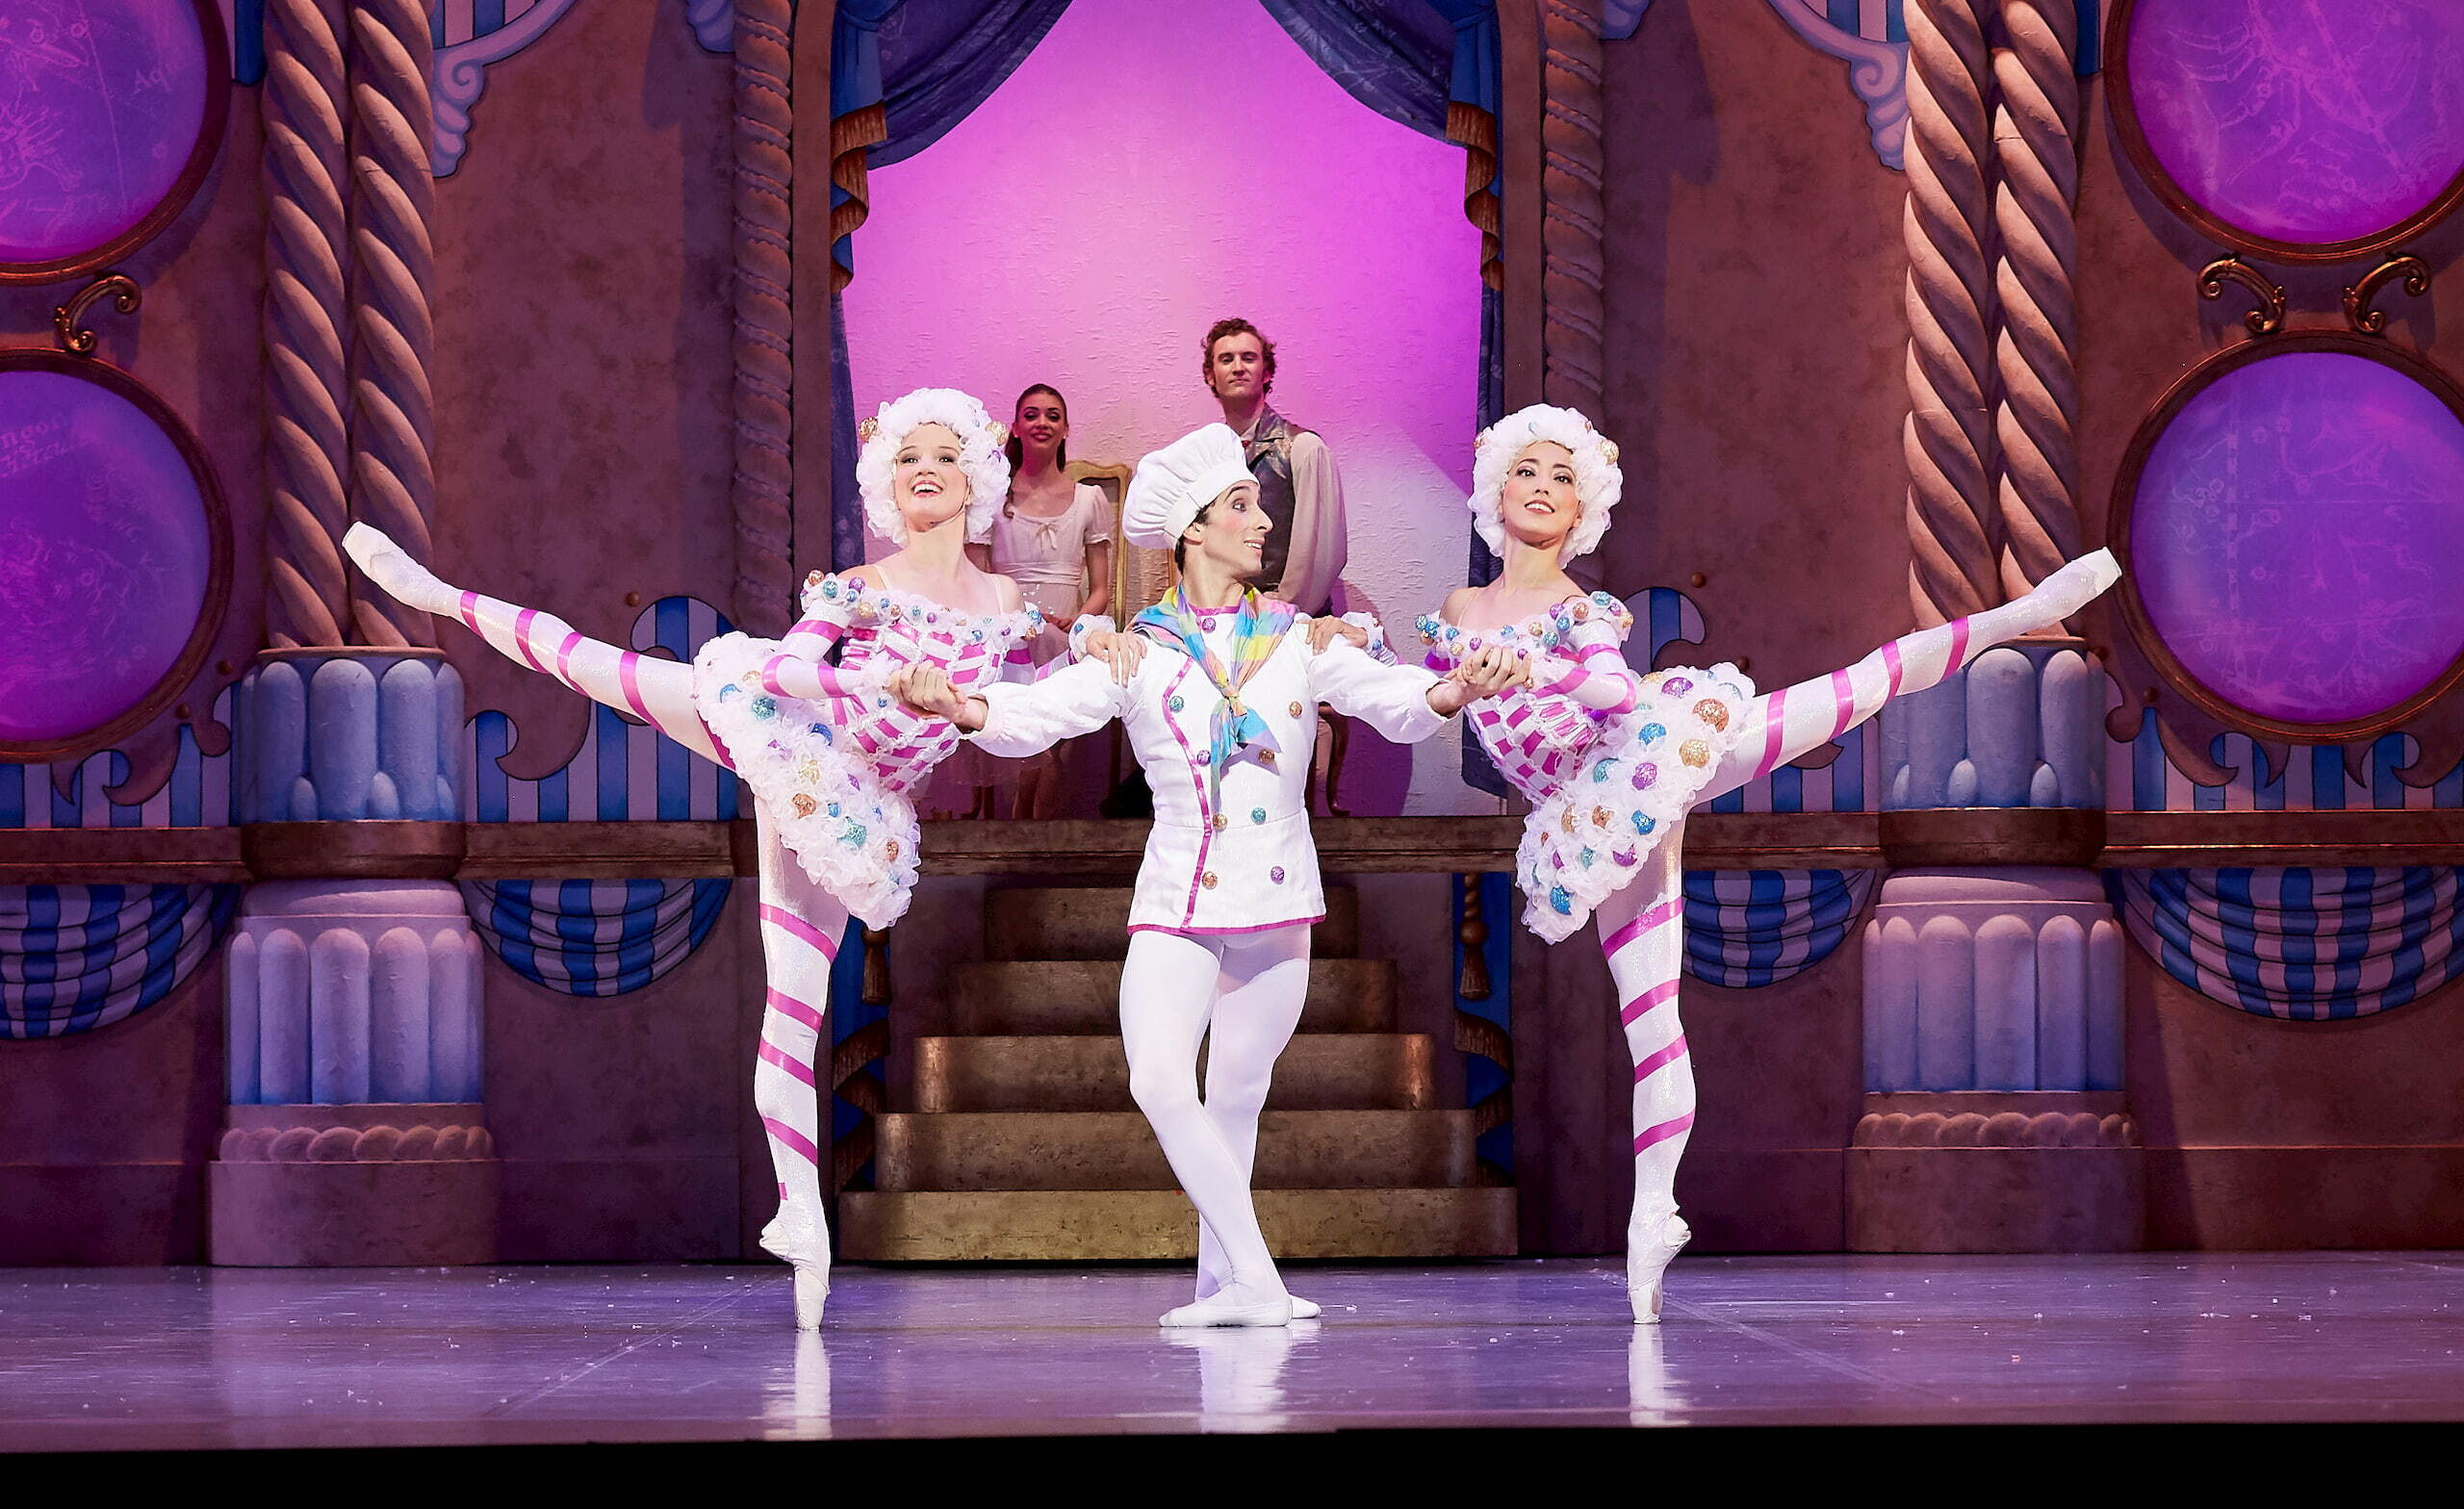 Nikki Blain, Stefano Russiello and Chihiro Nomura as Mirlitons in The Nutcracker. Photo by Sergey Pevnev.